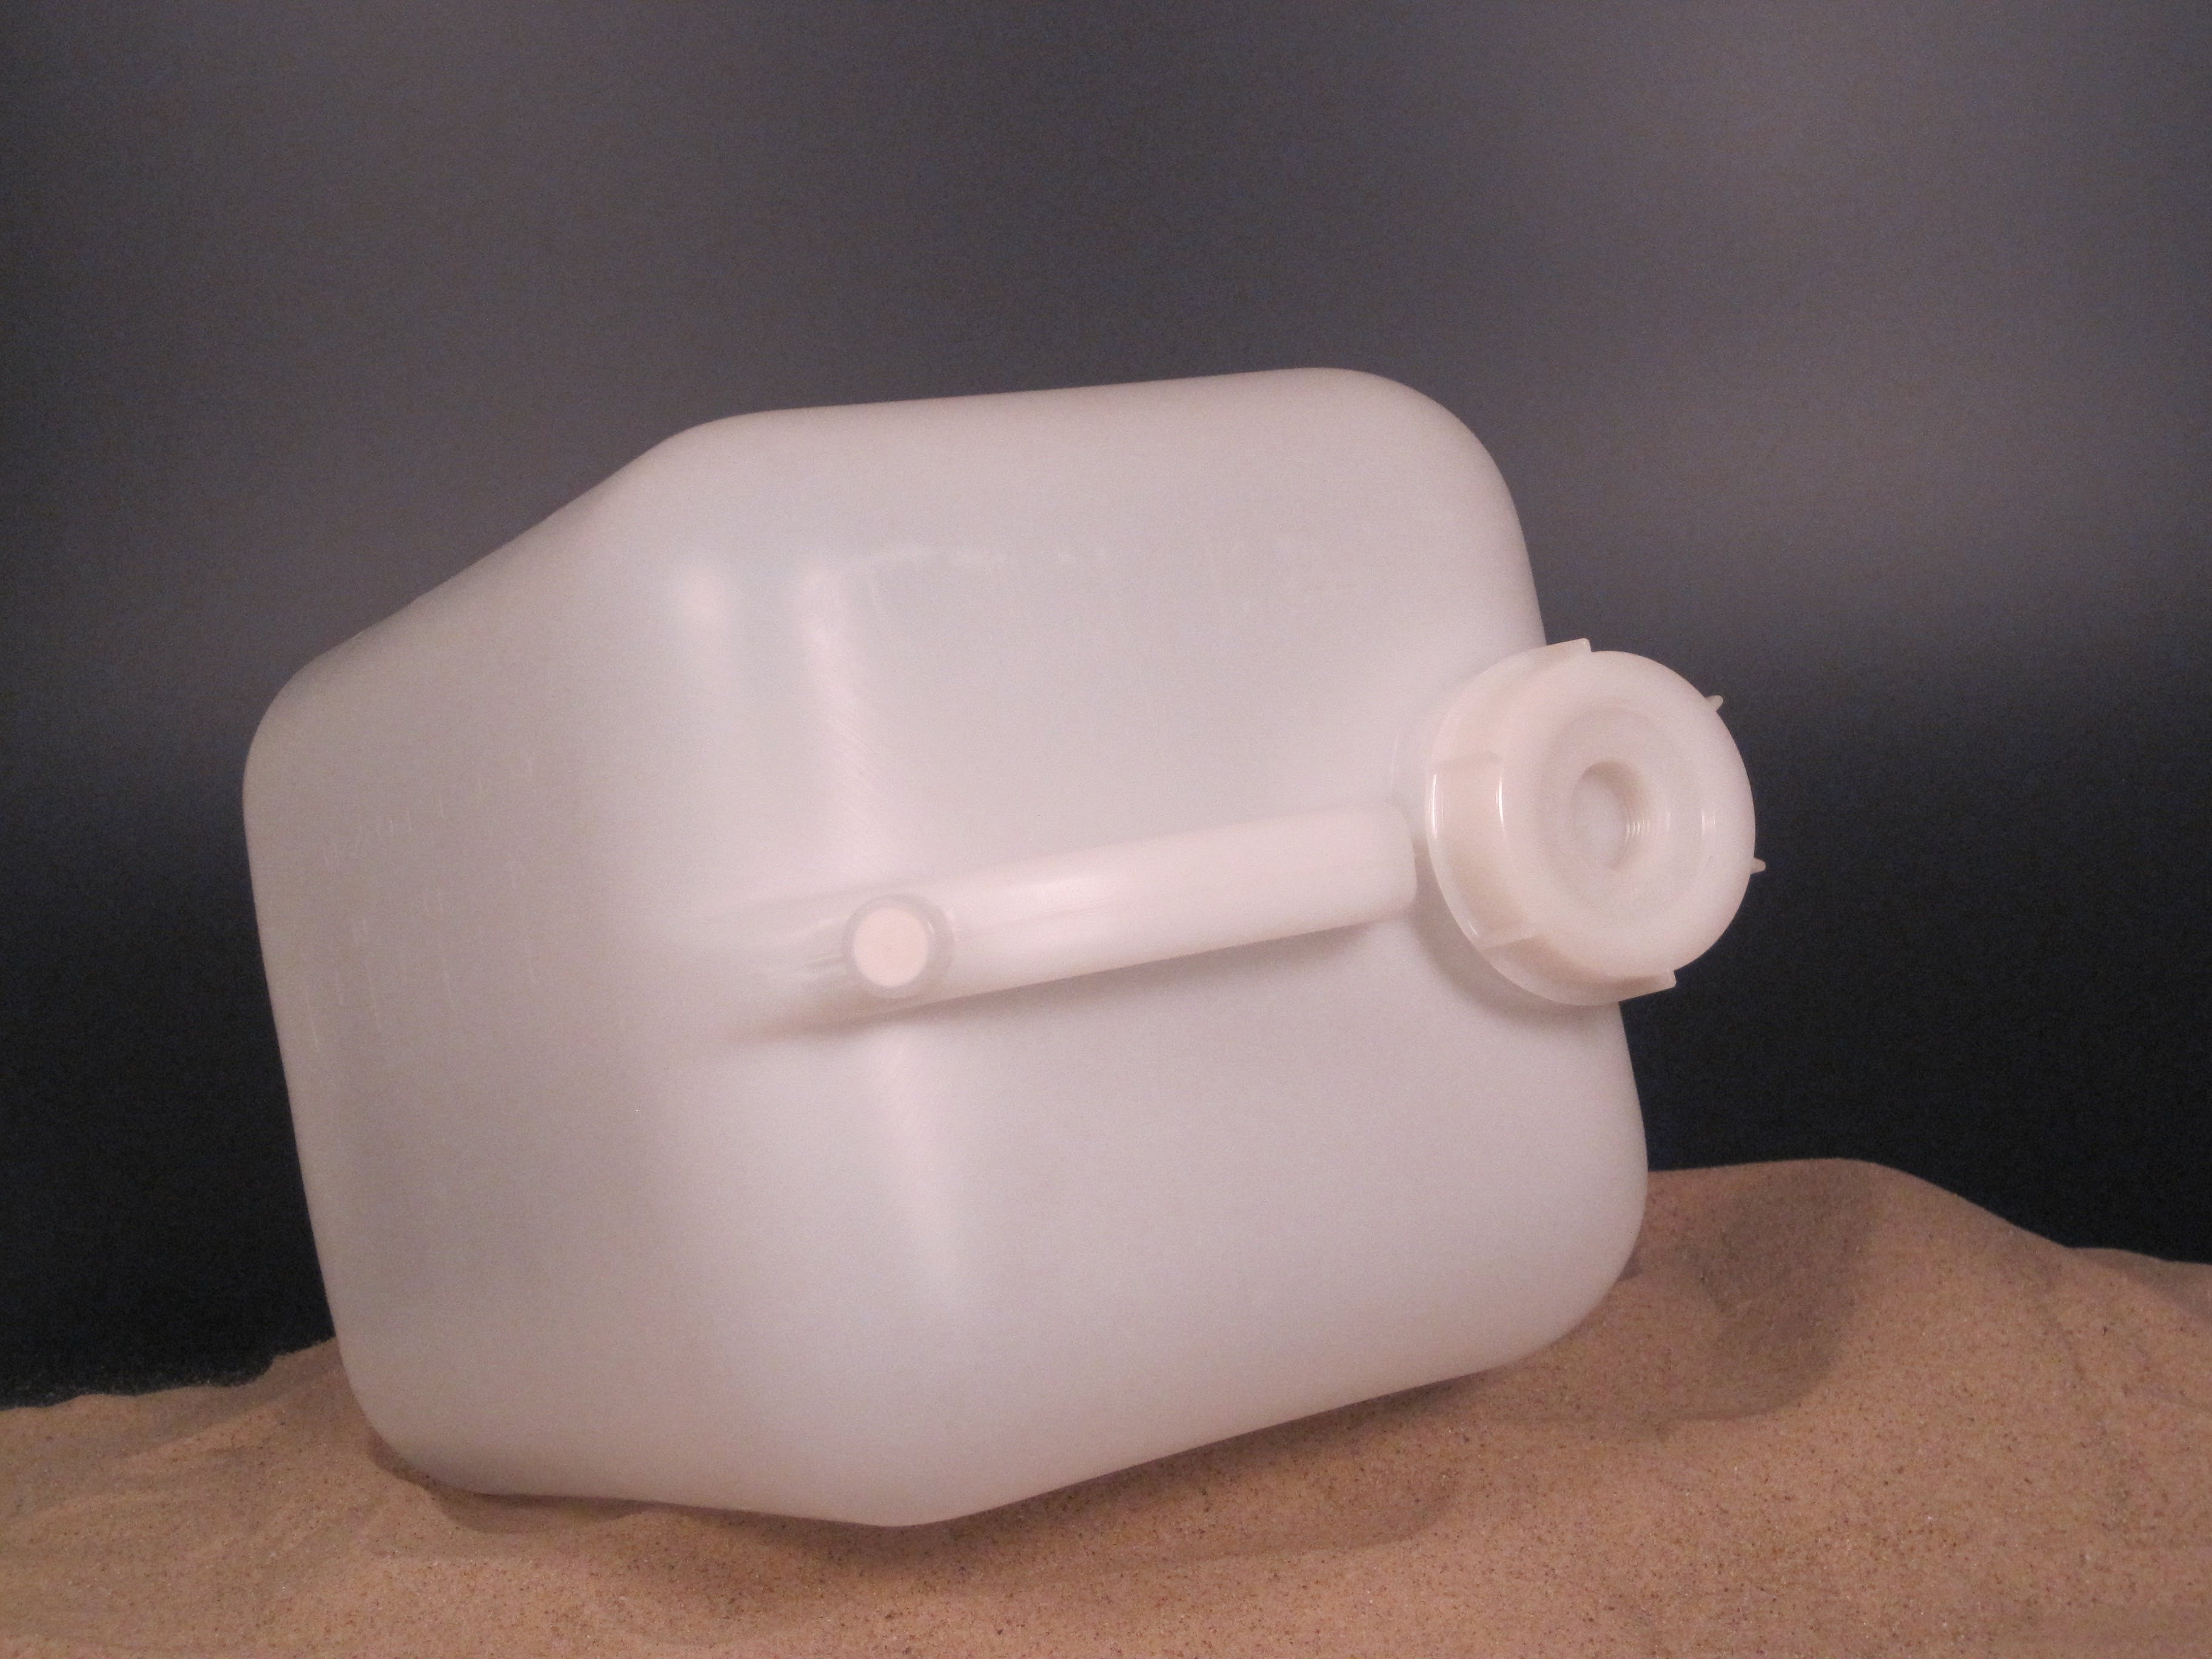 Plastic Tightheads Pail sold by Land & Sea Packaging